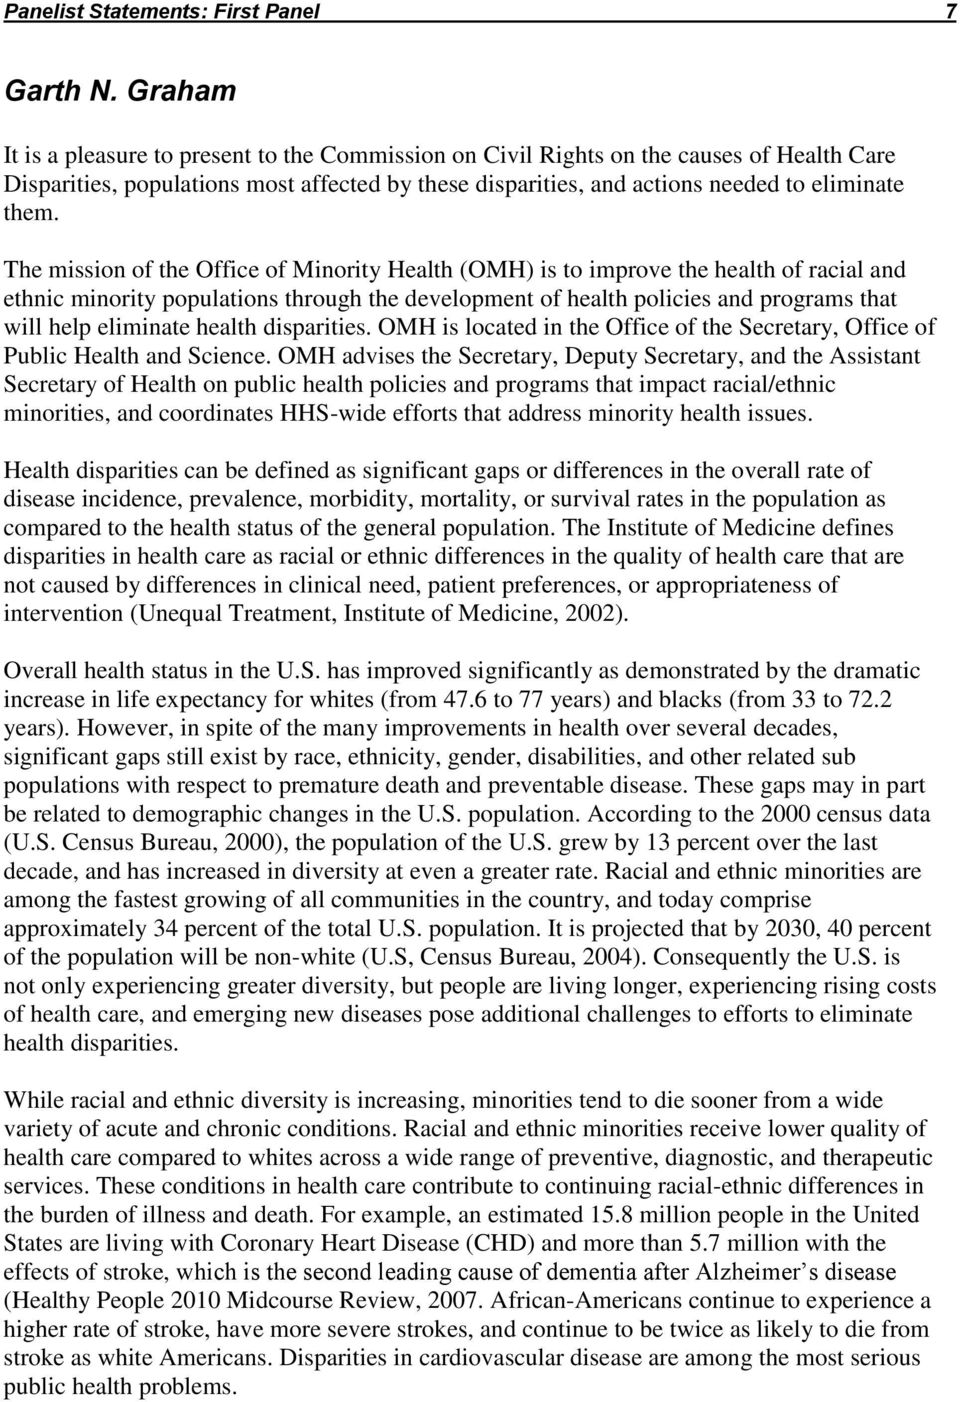 The mission of the Office of Minority Health (OMH) is to improve the health of racial and ethnic minority populations through the development of health policies and programs that will help eliminate